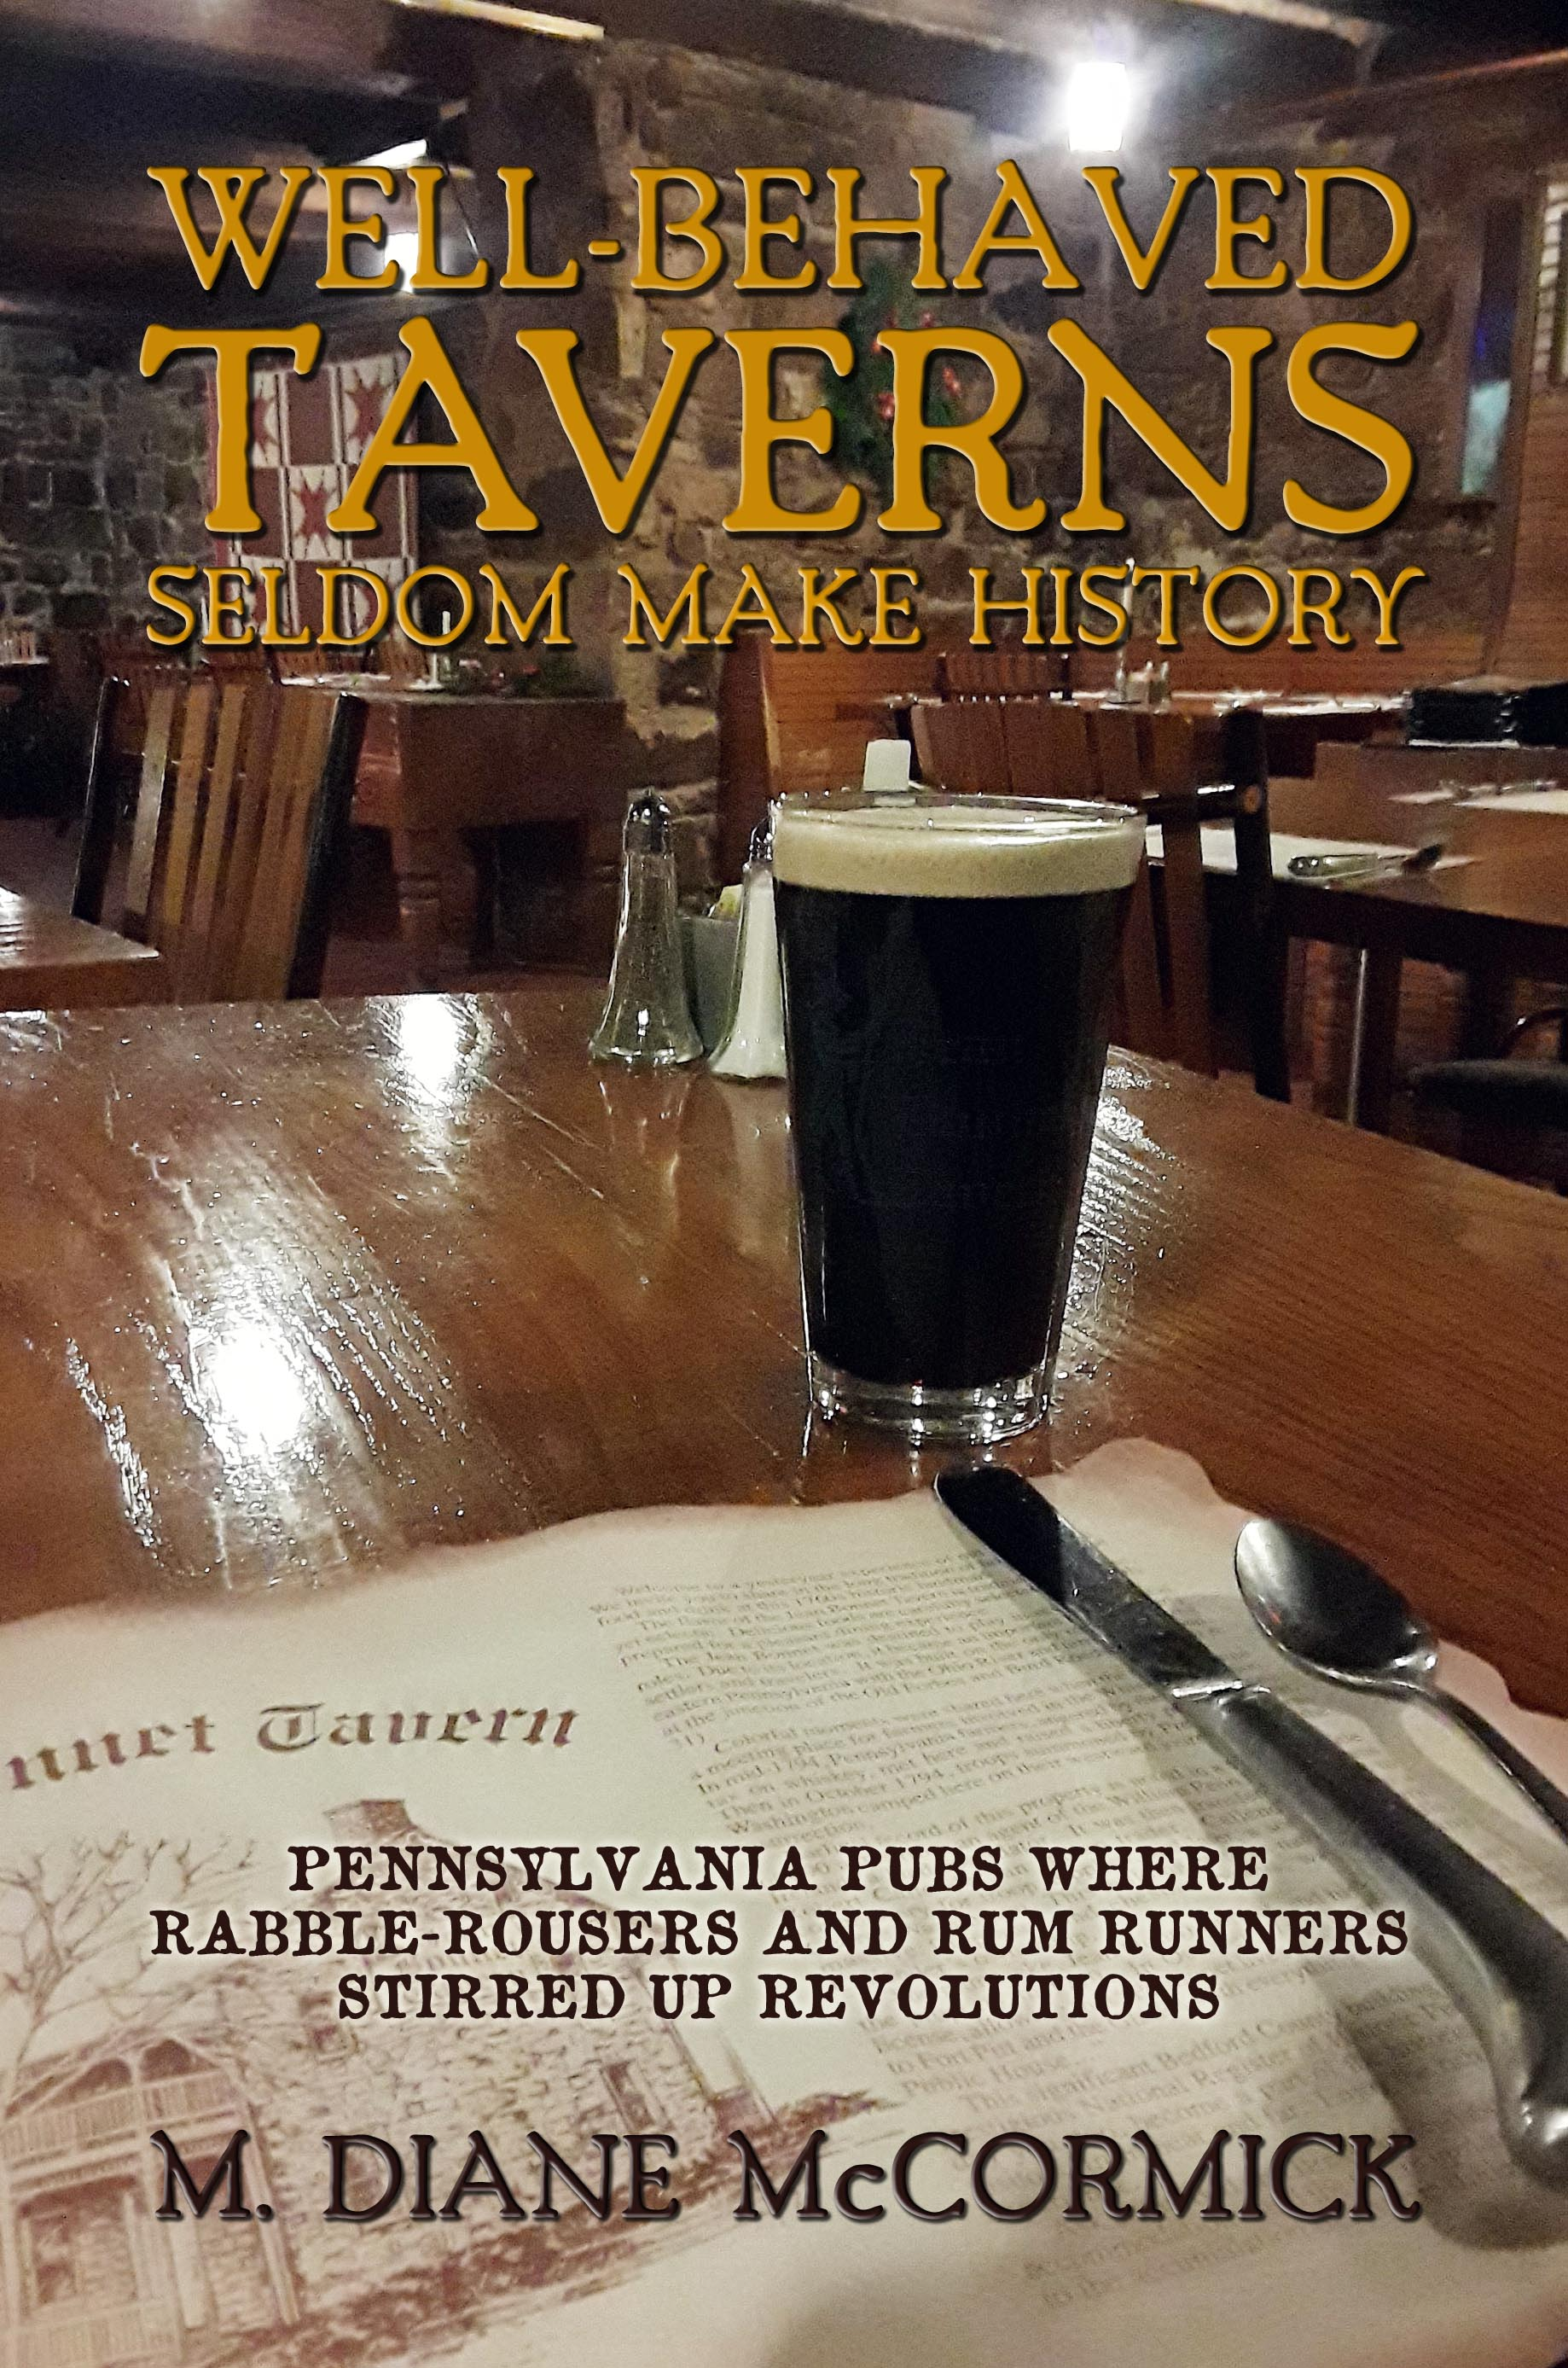 "Diane McCormick's ""Well-behaved Taverns Seldom Make History"" repeats as the Sunbury Press bestseller for December"